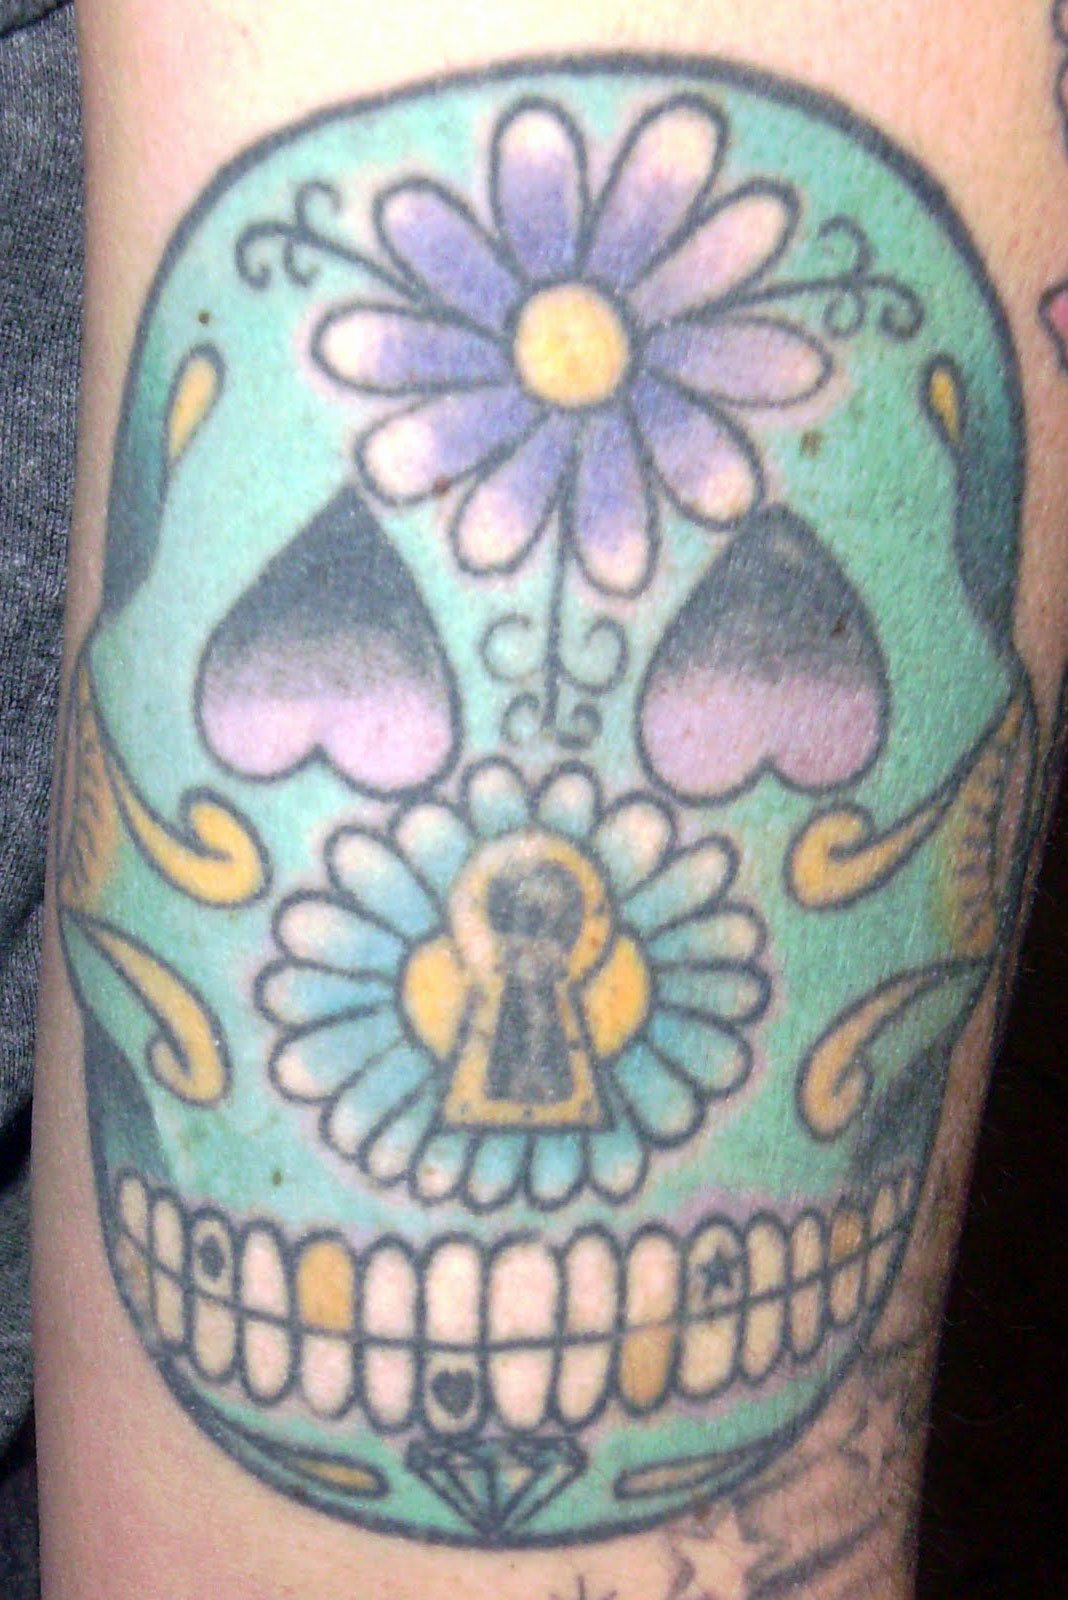 His And Hers Sugar Skull Tattoos